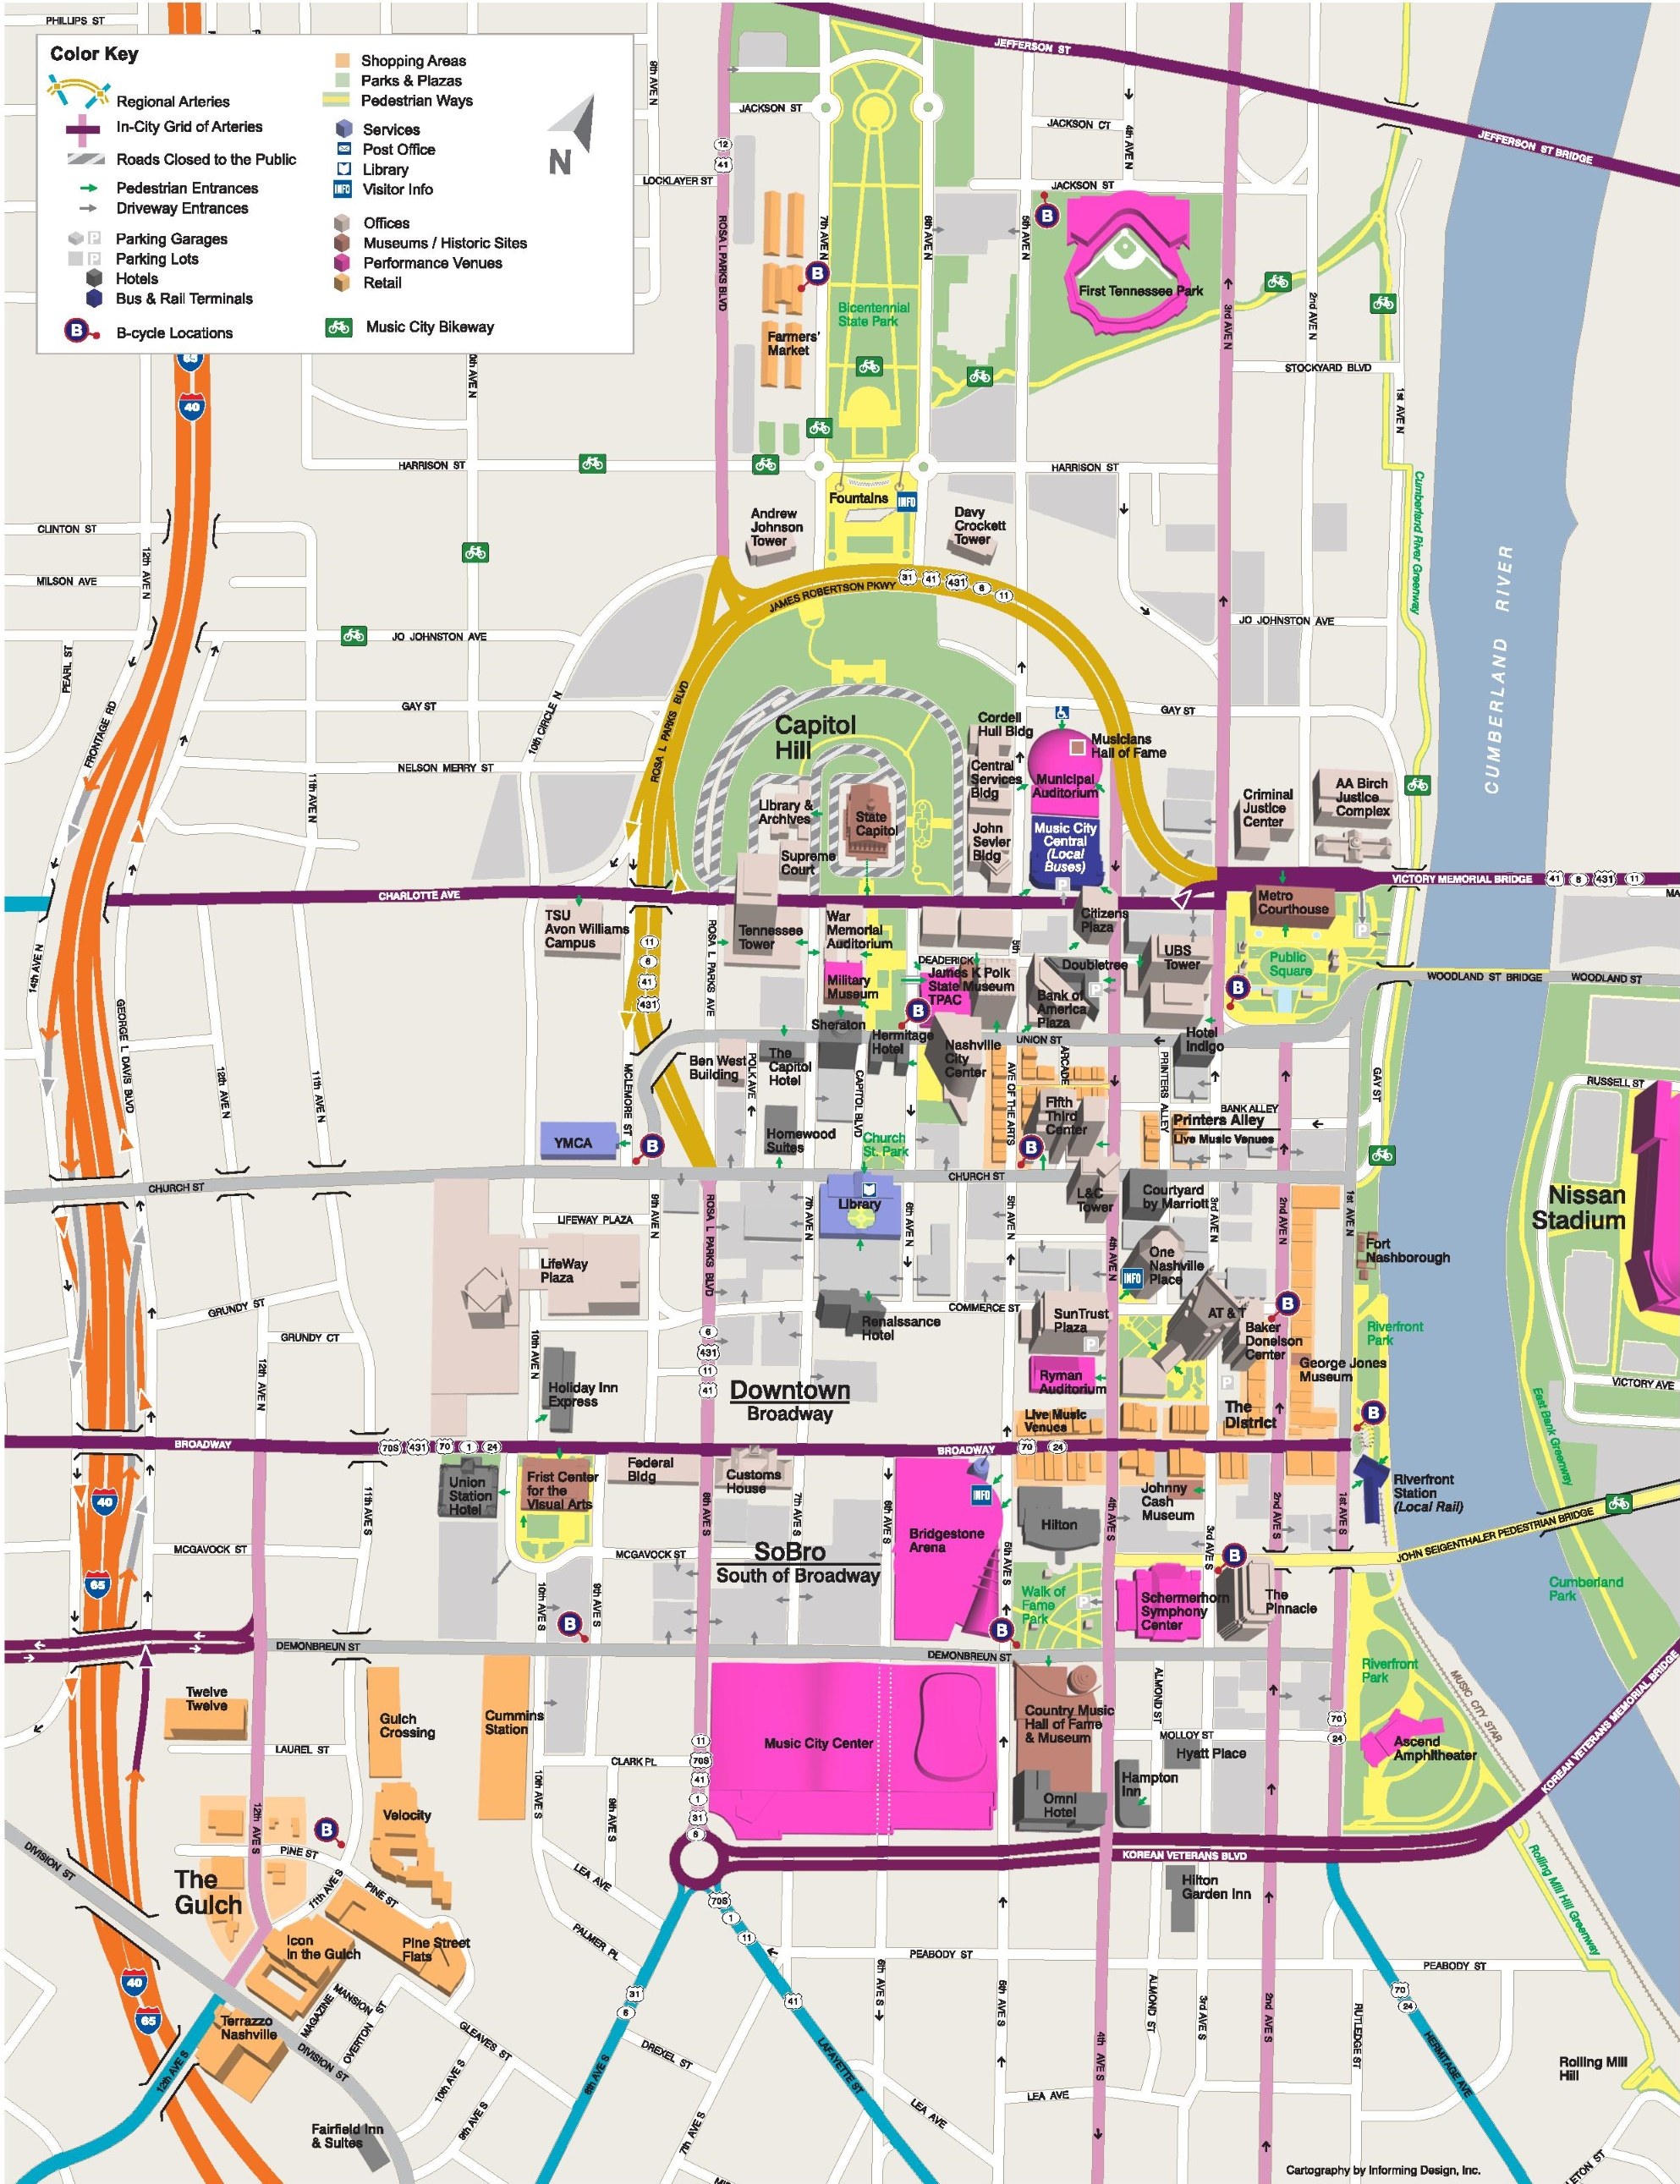 Nashville tourist attractions map – Nashville Tourist Attractions Map